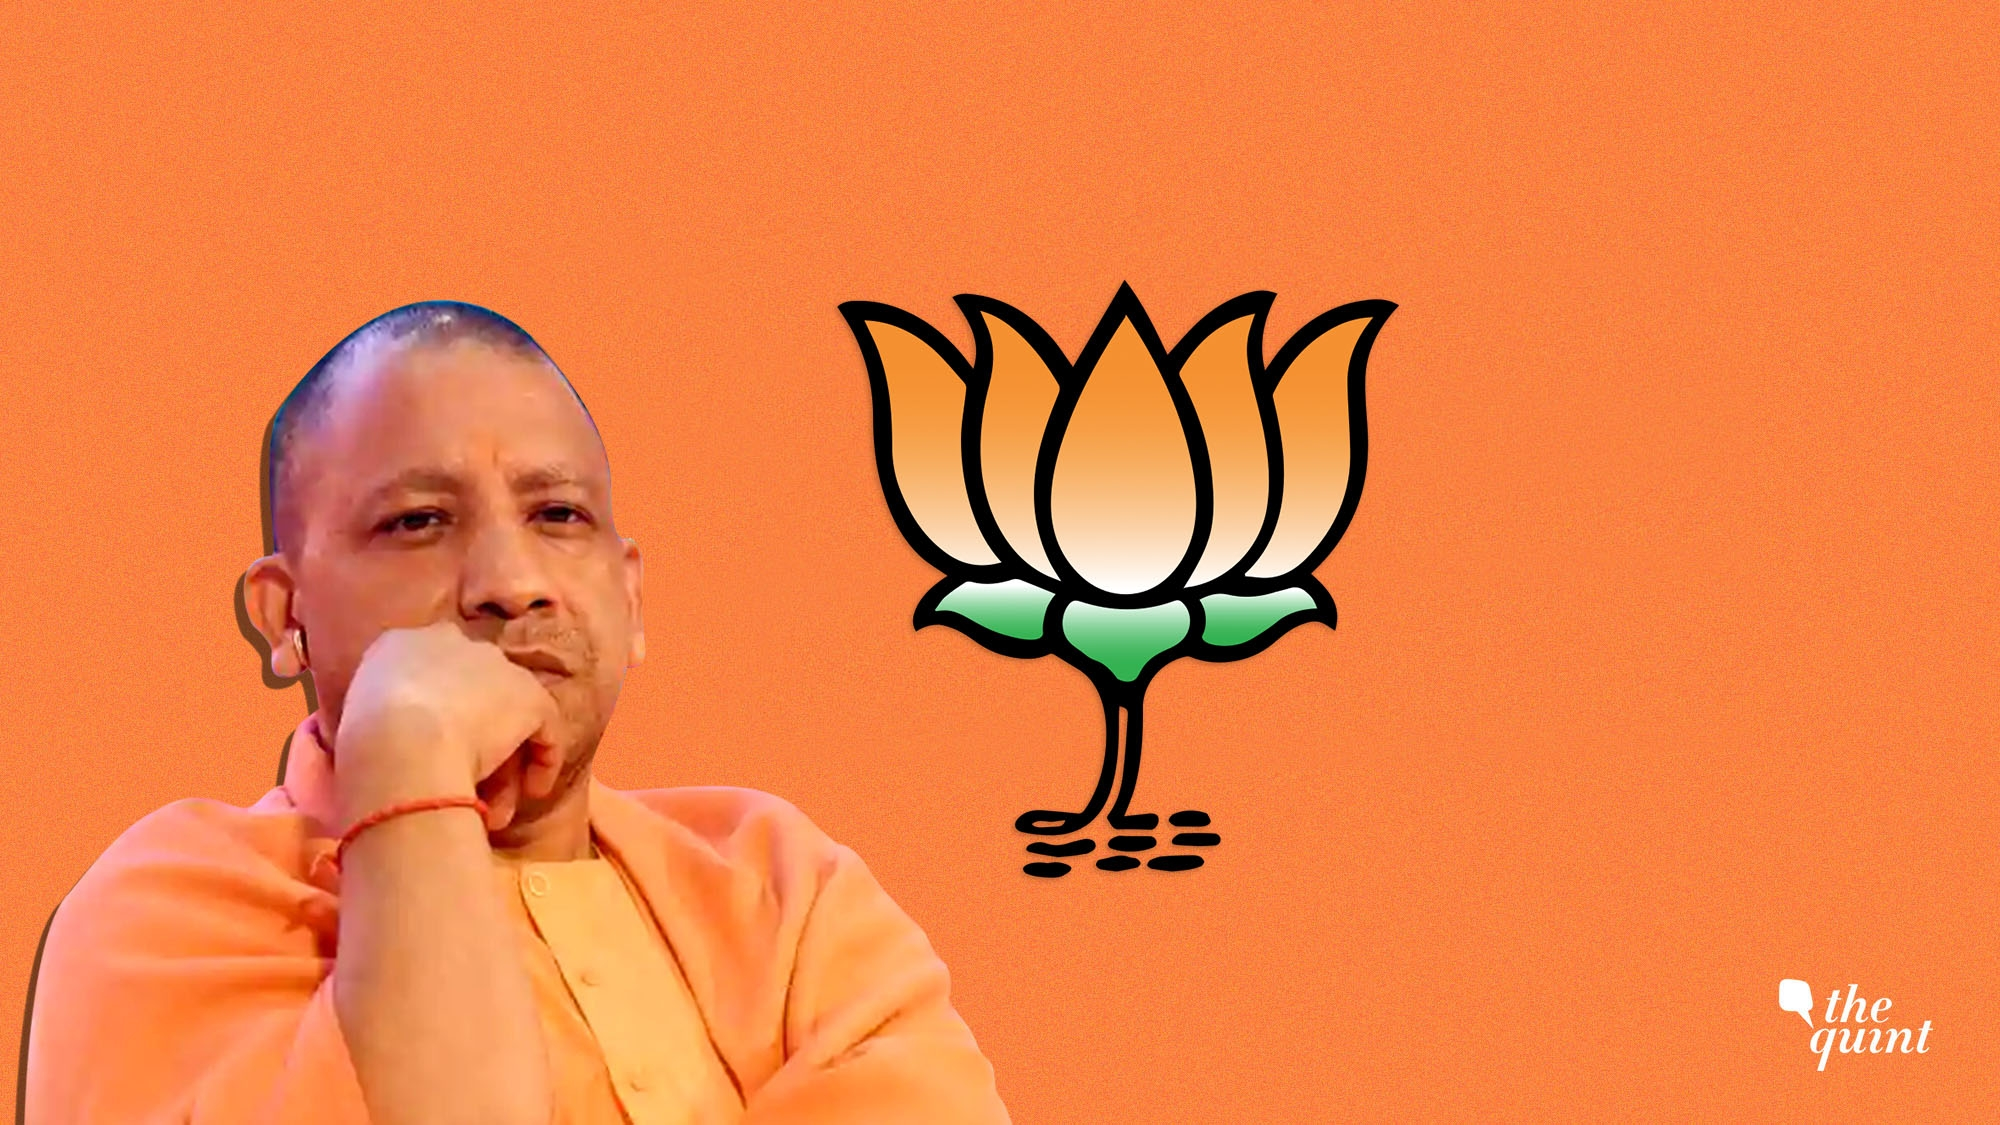 Is Yogi Adityanath A 'Pawn' In BJP's Game of Political Signaling?